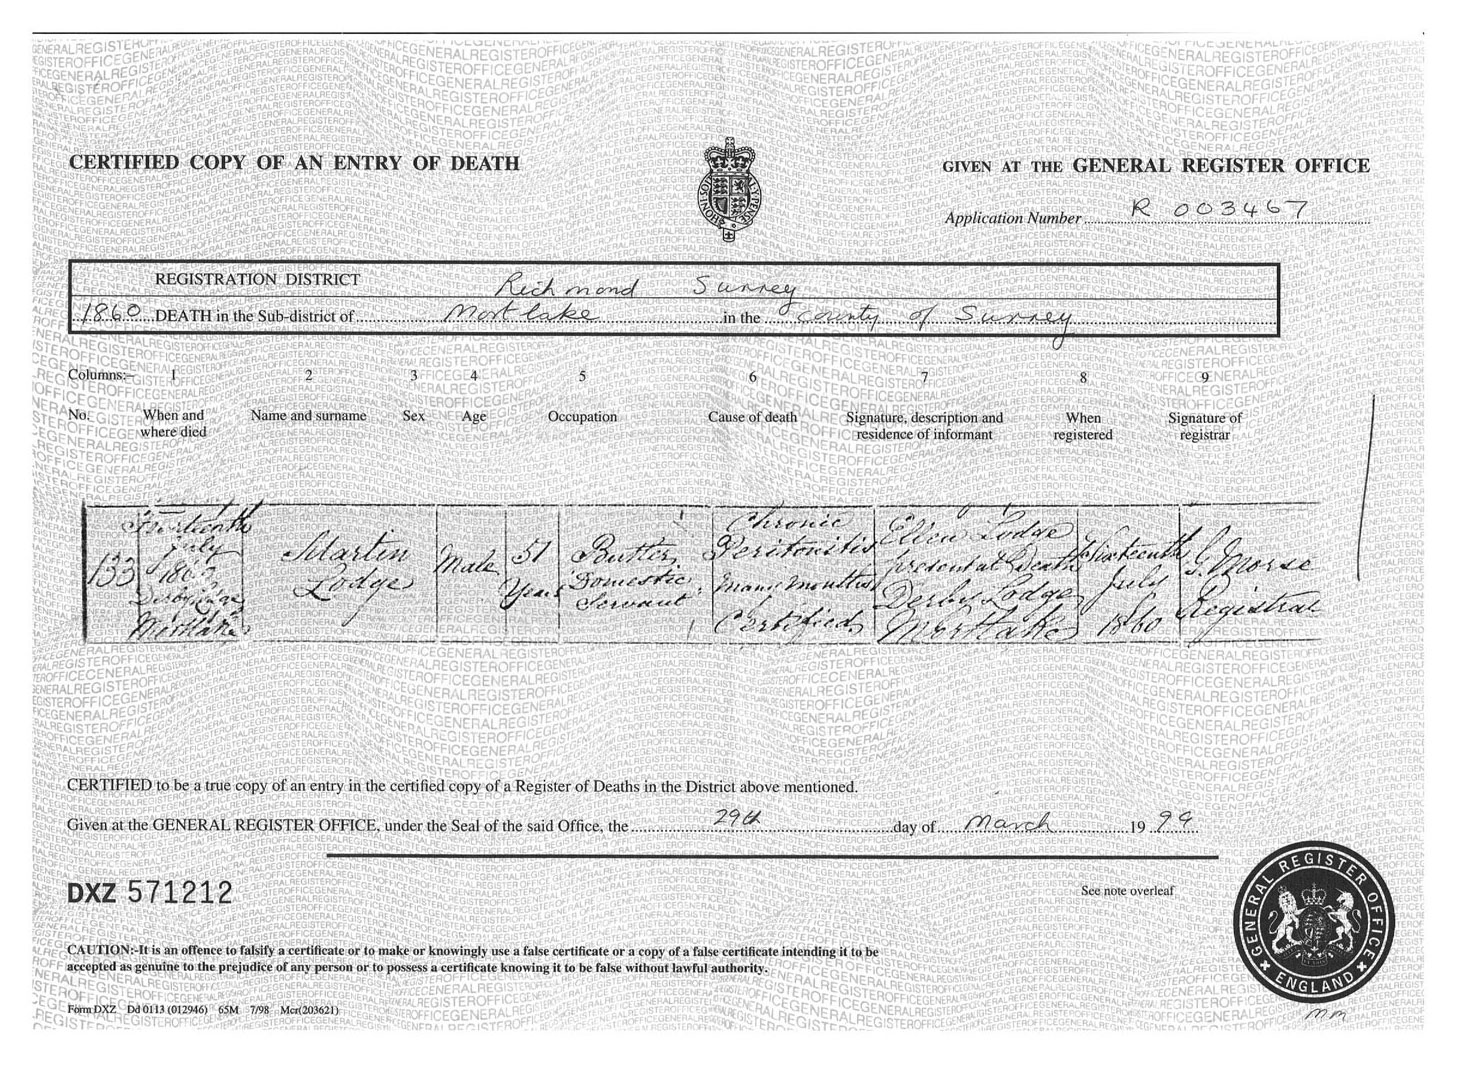 Martin Lodge, copy of death certificate, 1860. Click to enlarge.